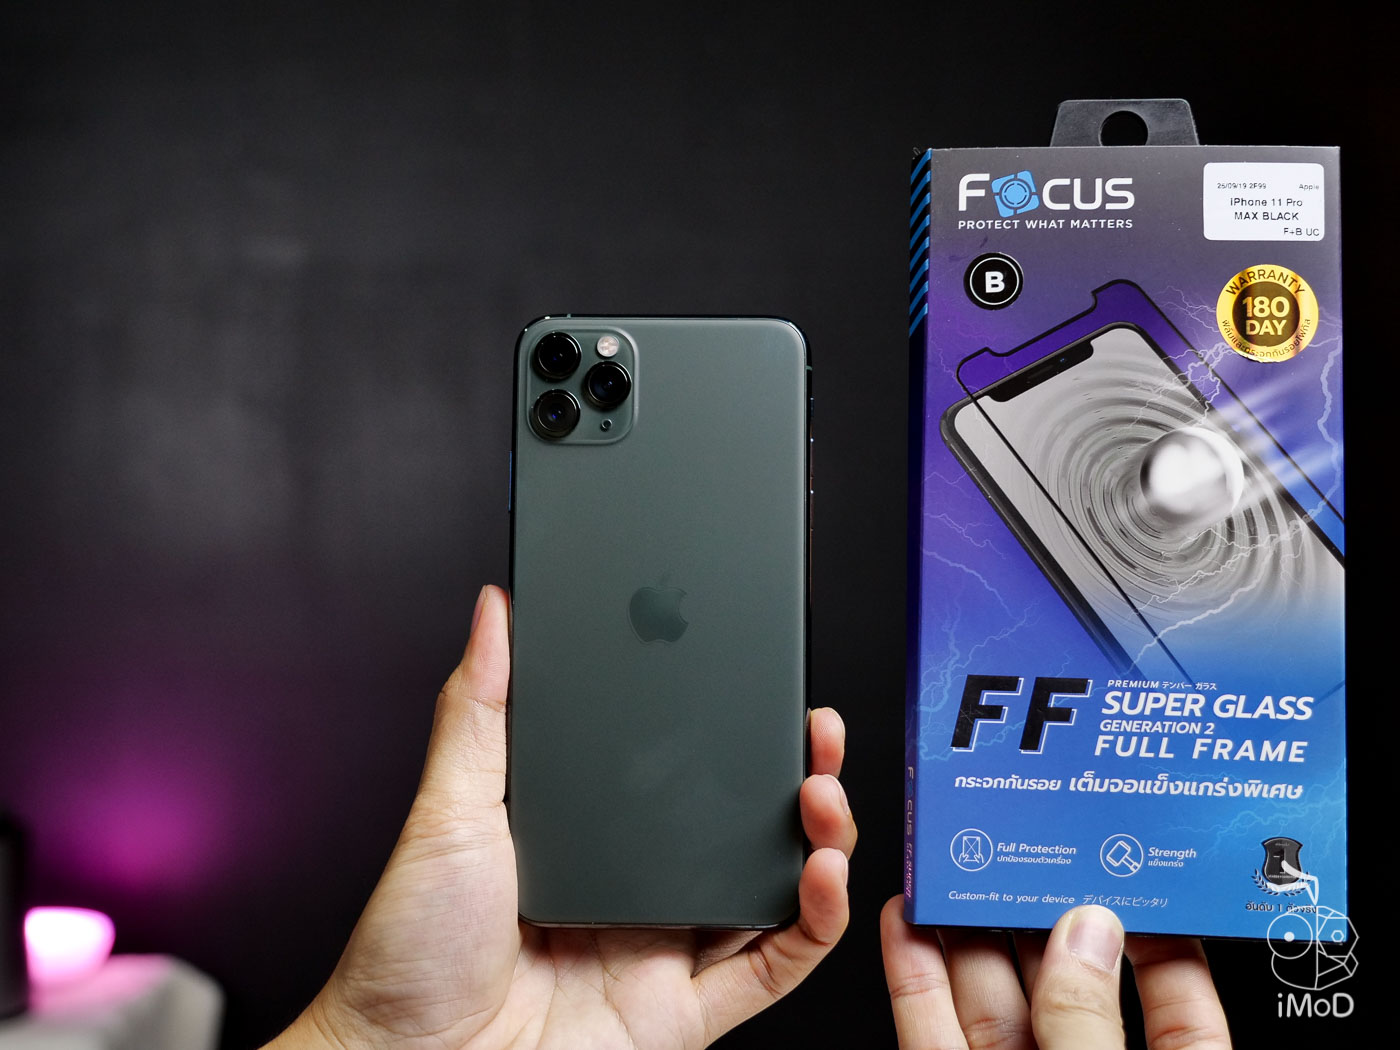 Focus Super Glass Full Frame Generation 2 For Iphone 11 Review 1013229